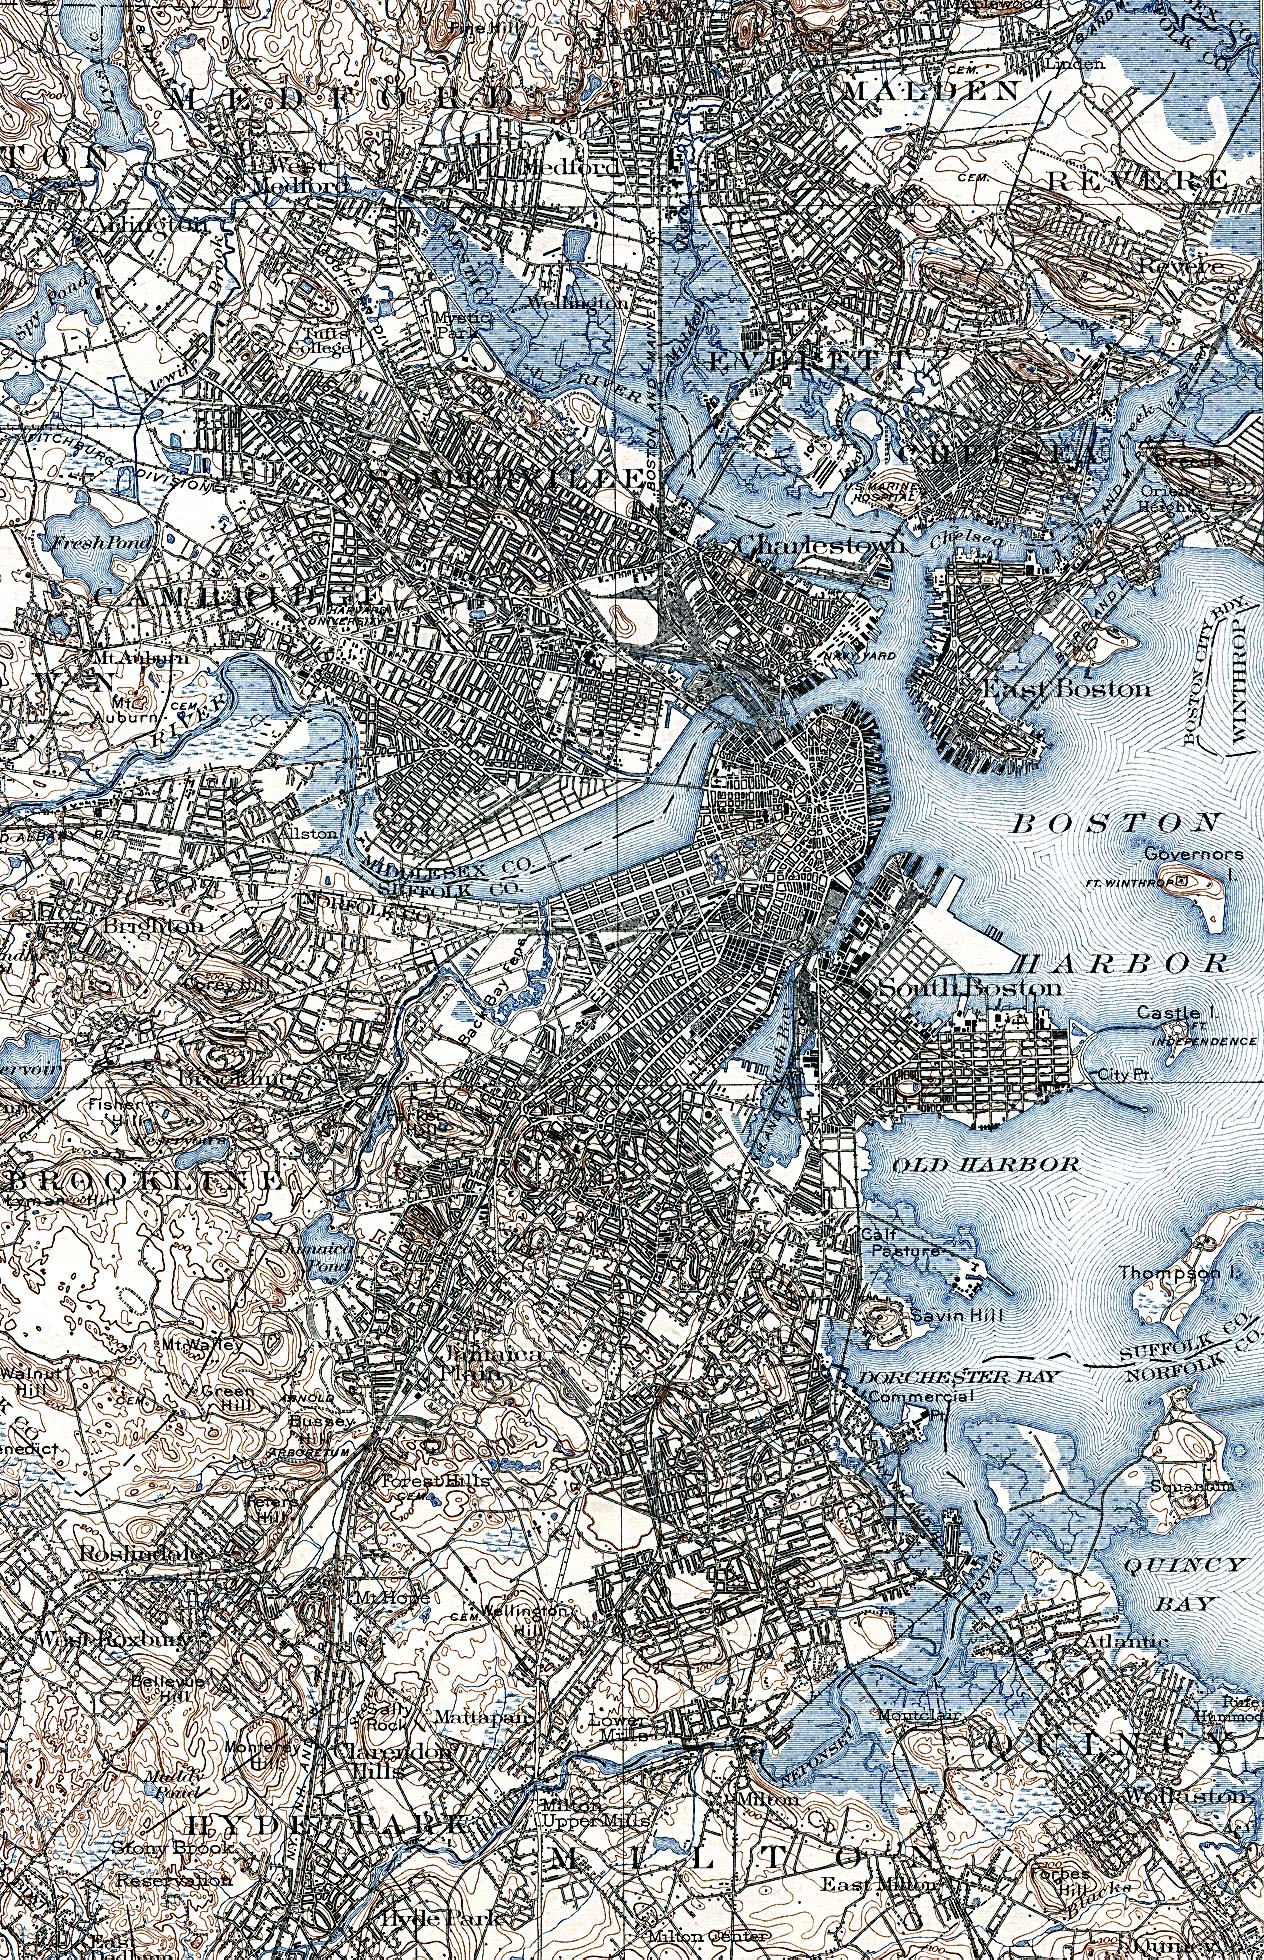 Boston City Map, Massachusetts, United States 1903